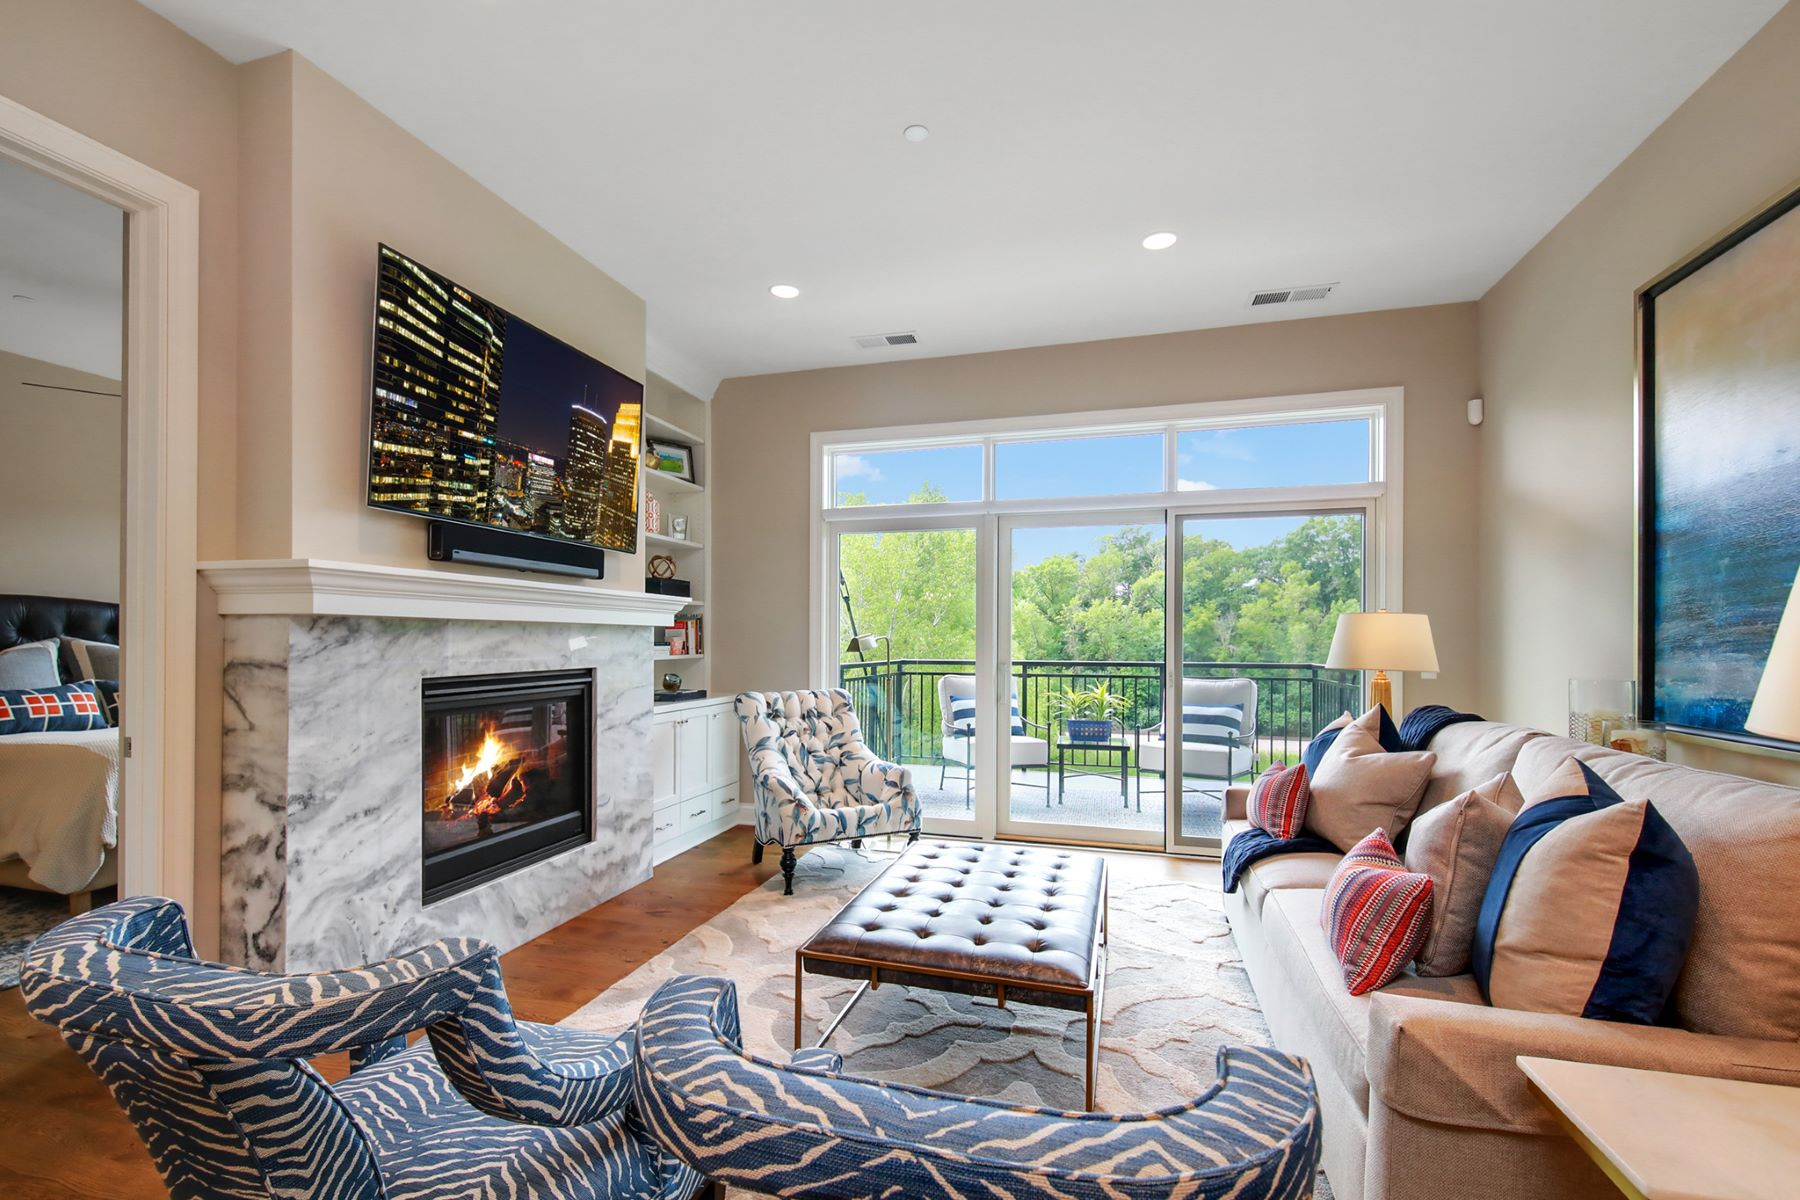 Condominiums for Sale at Beautiful South Facing Luxury Condo in the Heart of Wayzata 935 Lake Street E #204 Wayzata, Minnesota 55391 United States